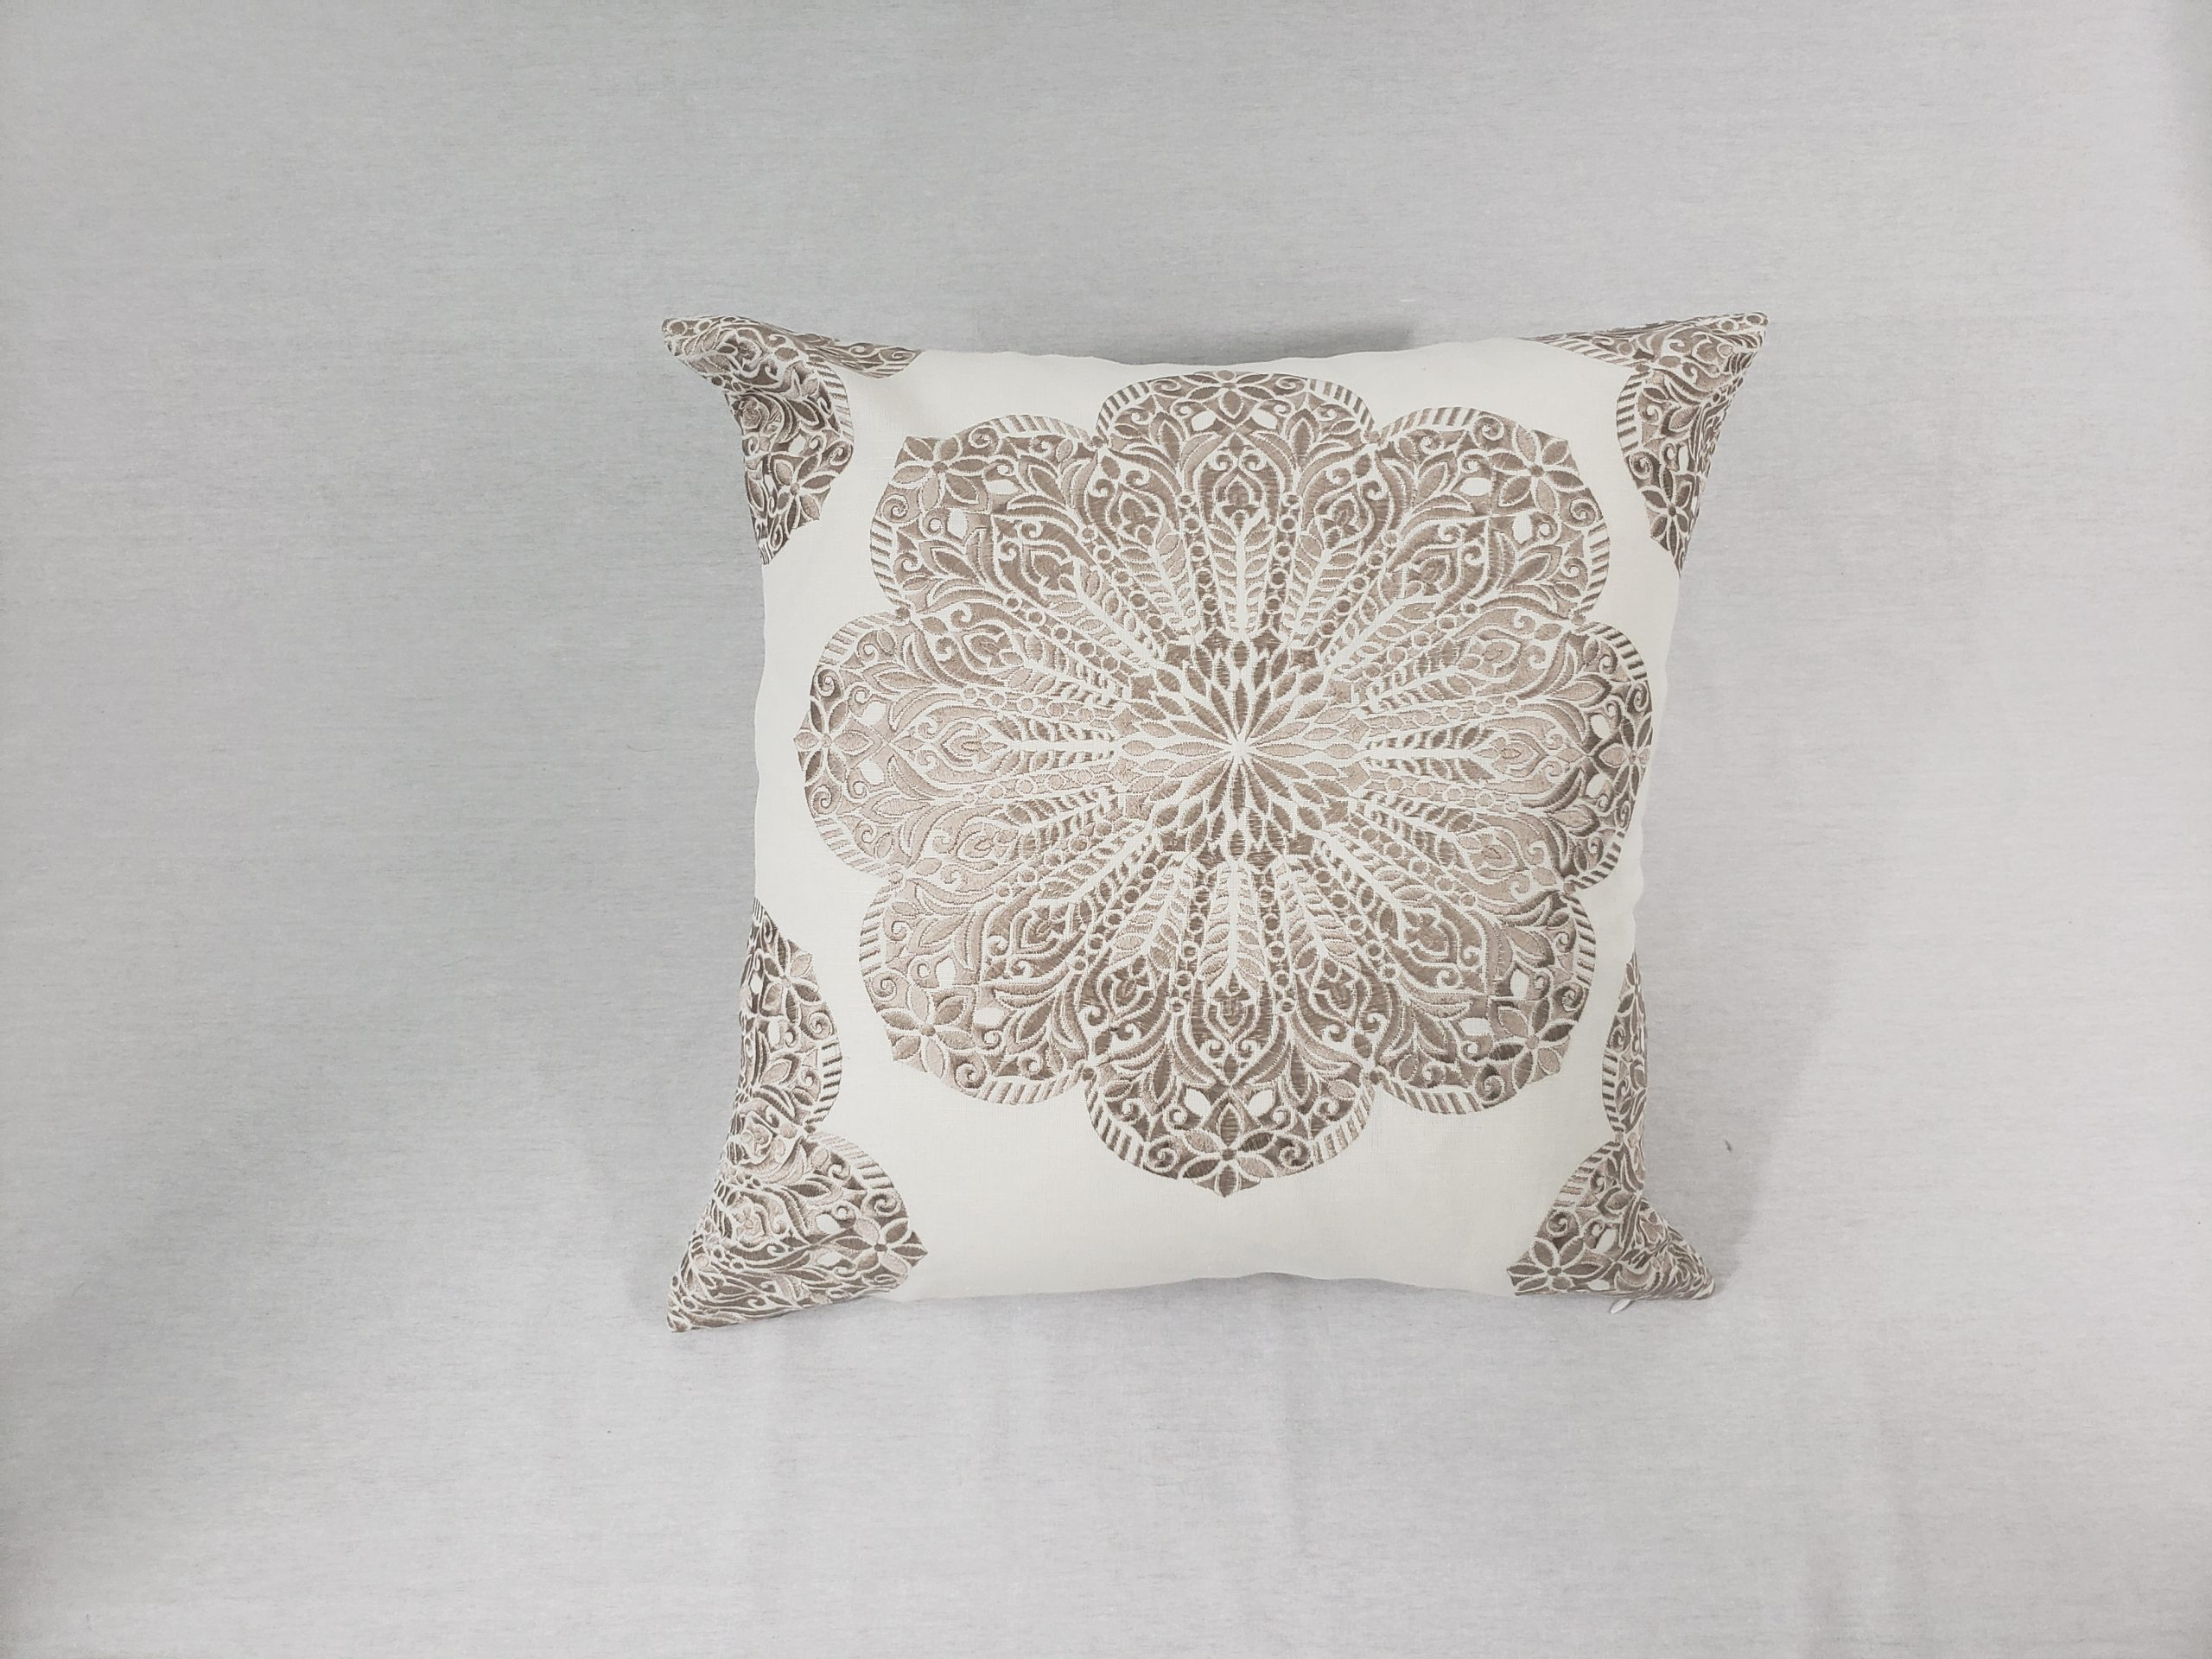 Floral medallion cushion with white background